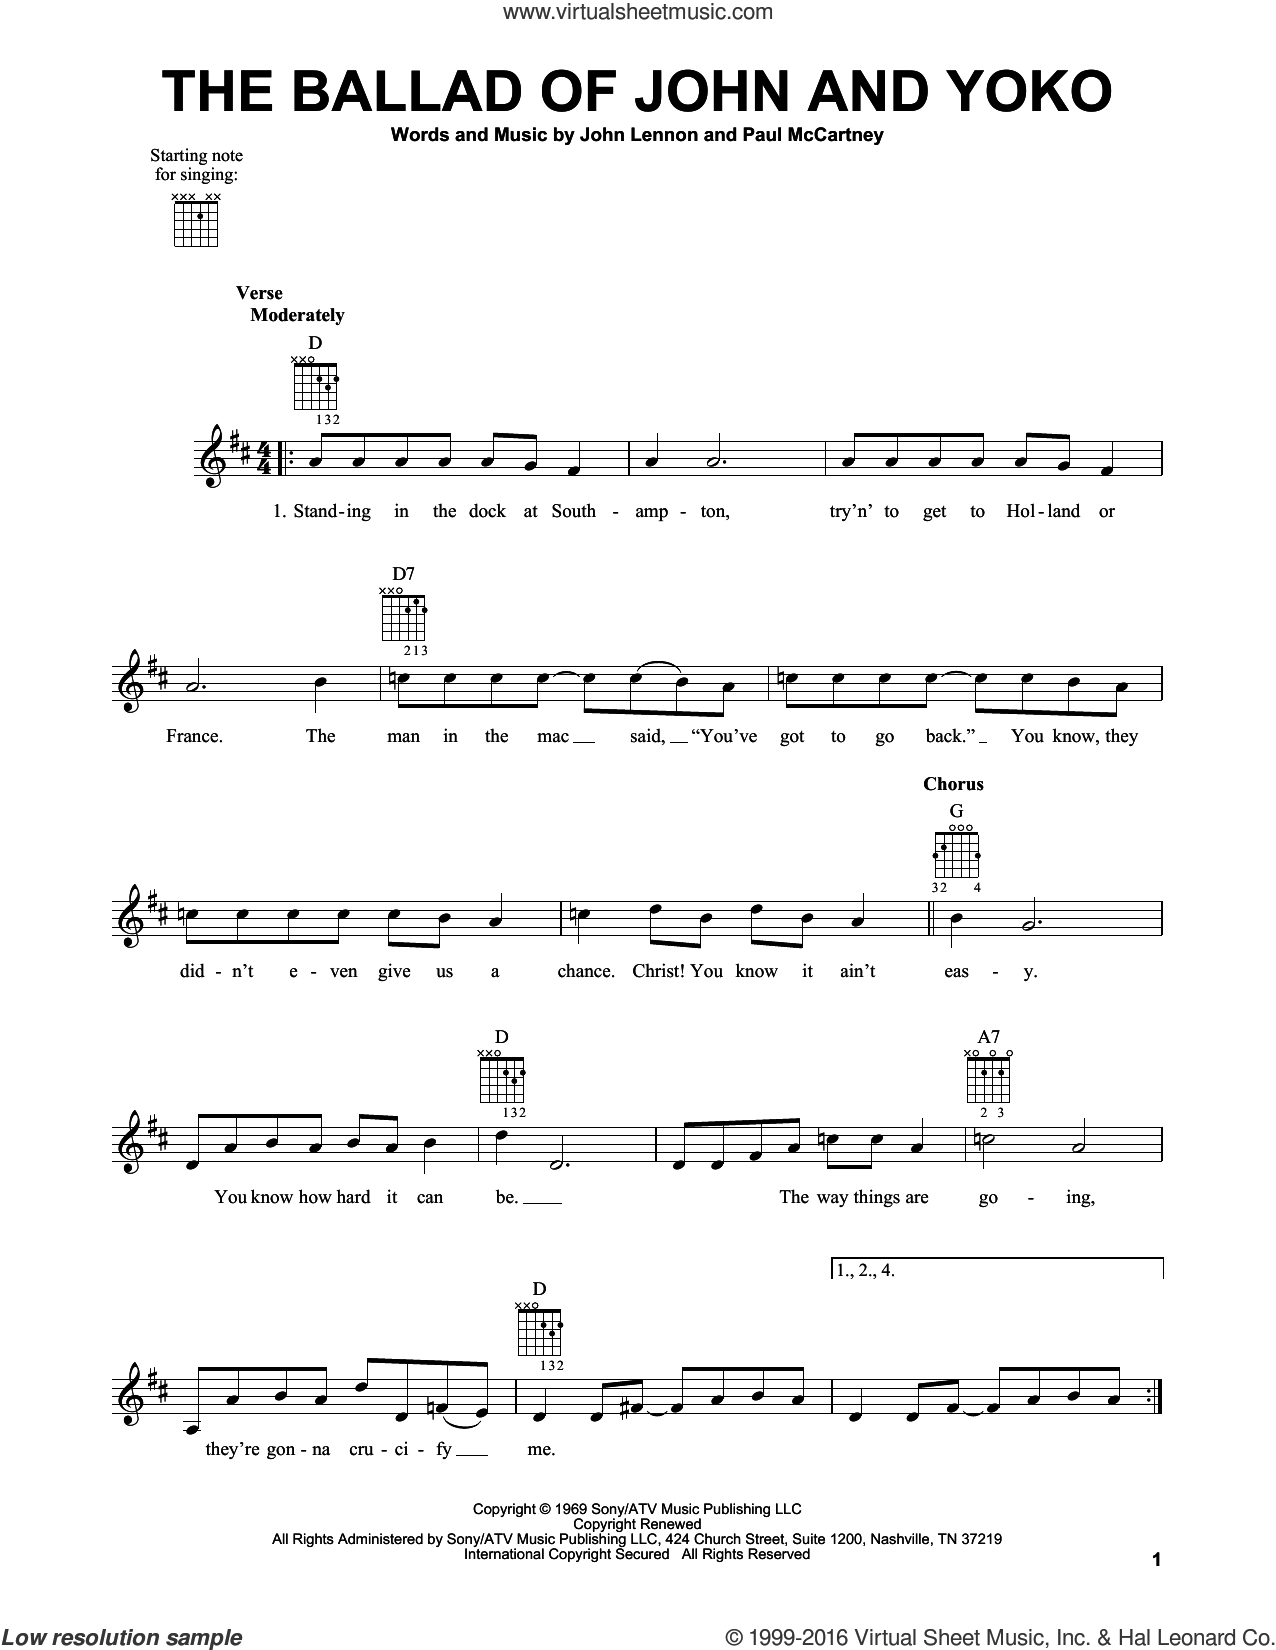 The Ballad Of John And Yoko sheet music for guitar solo (chords) by The Beatles, John Lennon and Paul McCartney, easy guitar (chords)